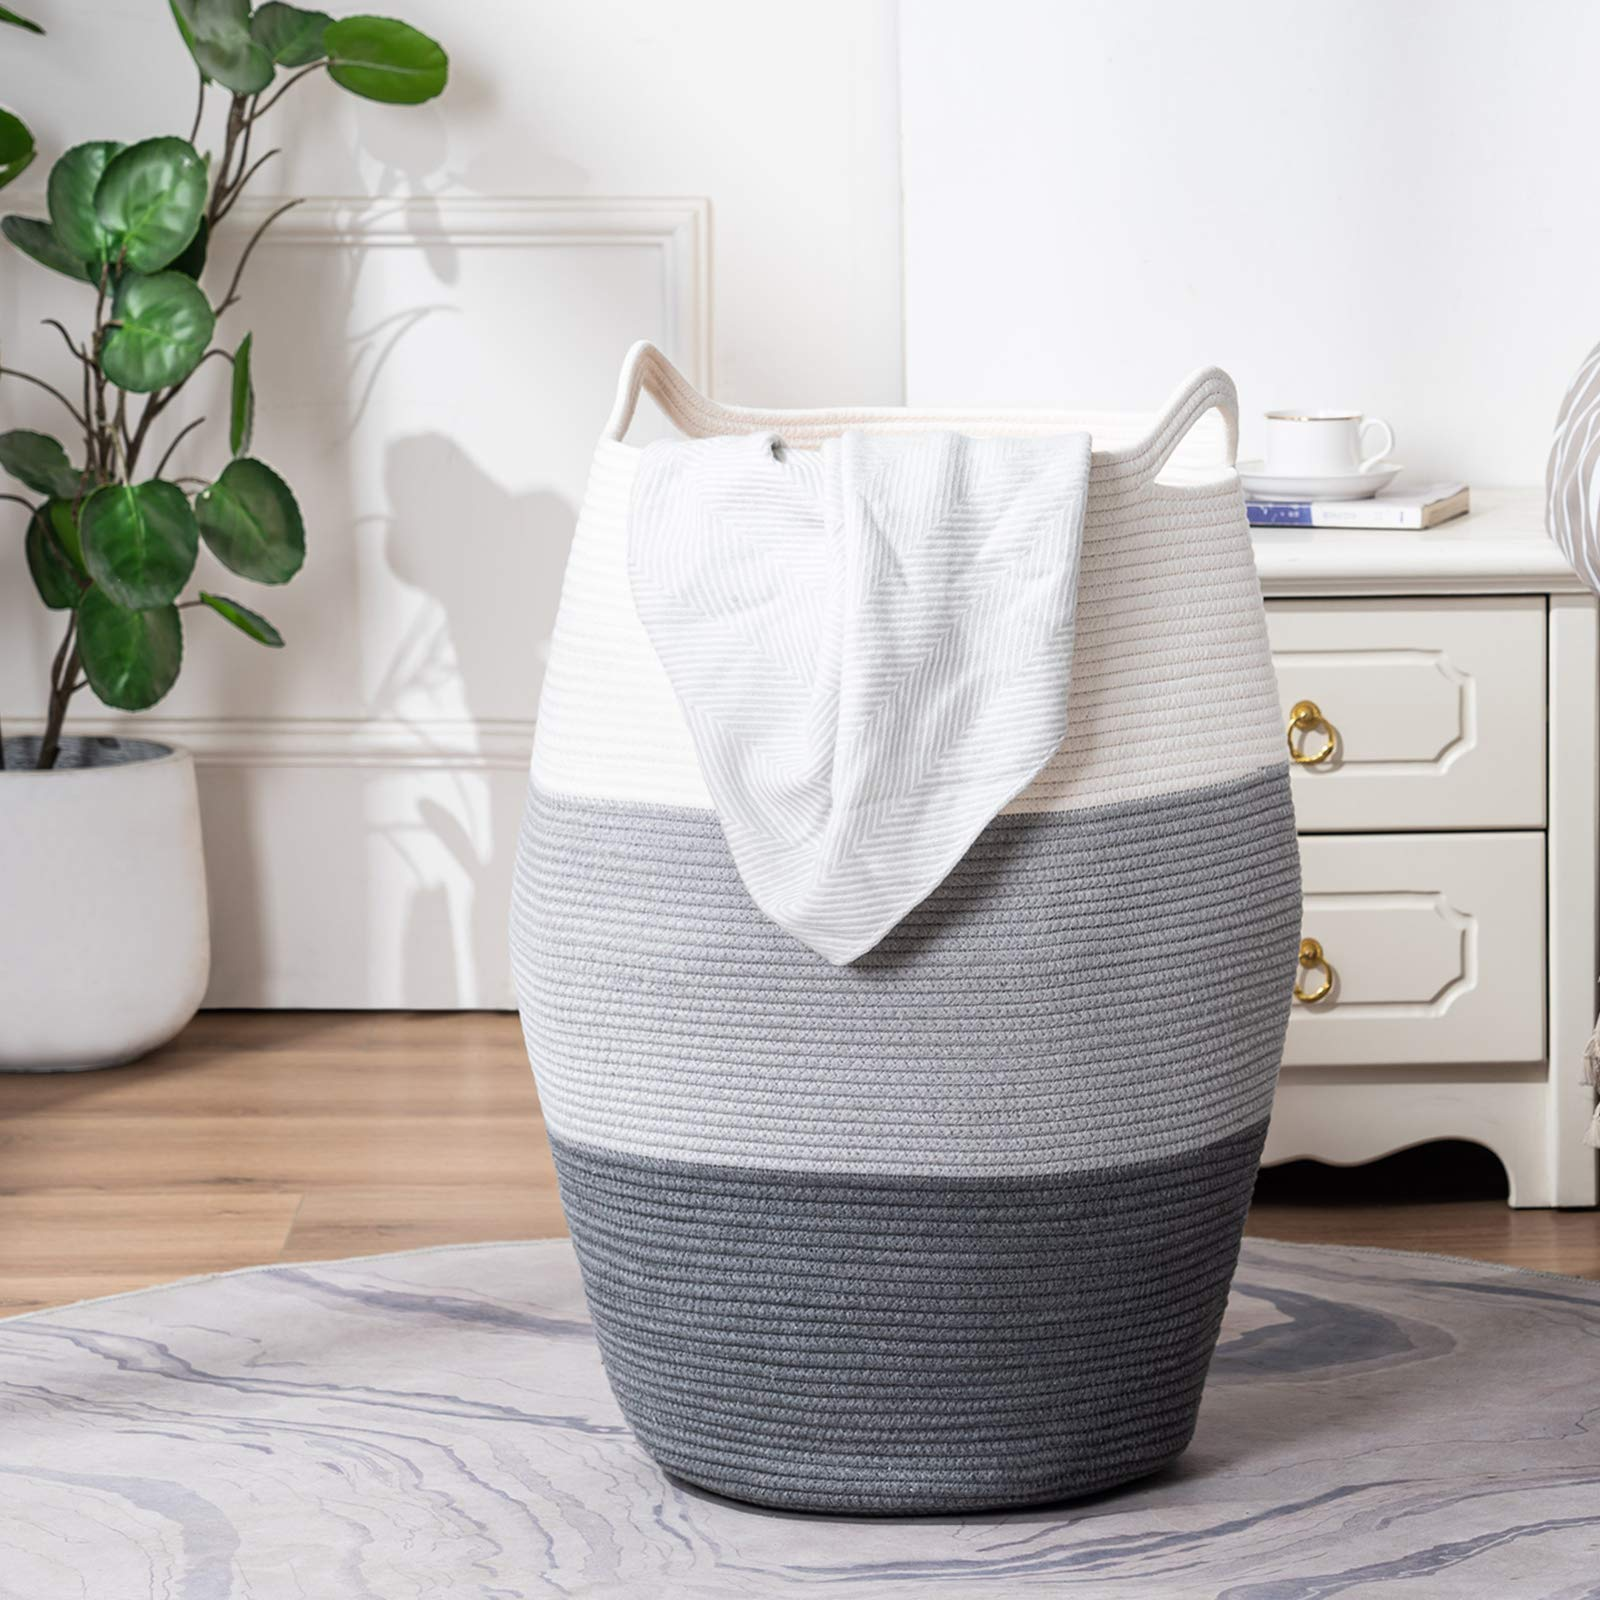 TECHMILLY Large Laundry Hamper Tall Woven Rope Basket Grey Modern Dirty Basket